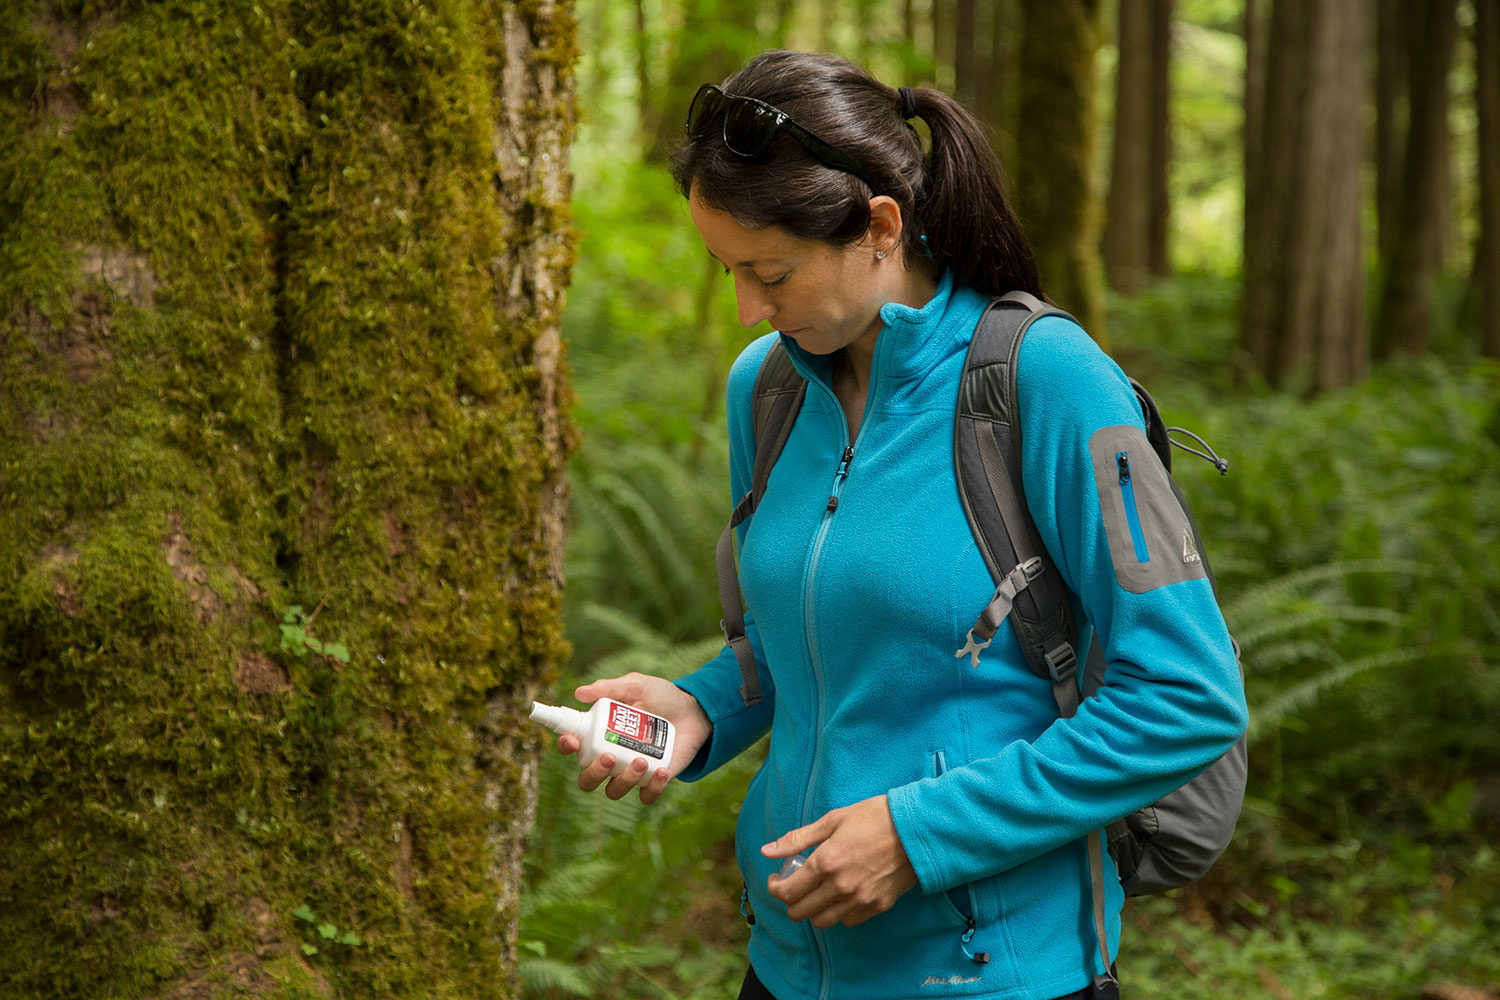 A Woman Read the Label of her Sawyer MAXI DEET Insect Repellent Spray while Hilking